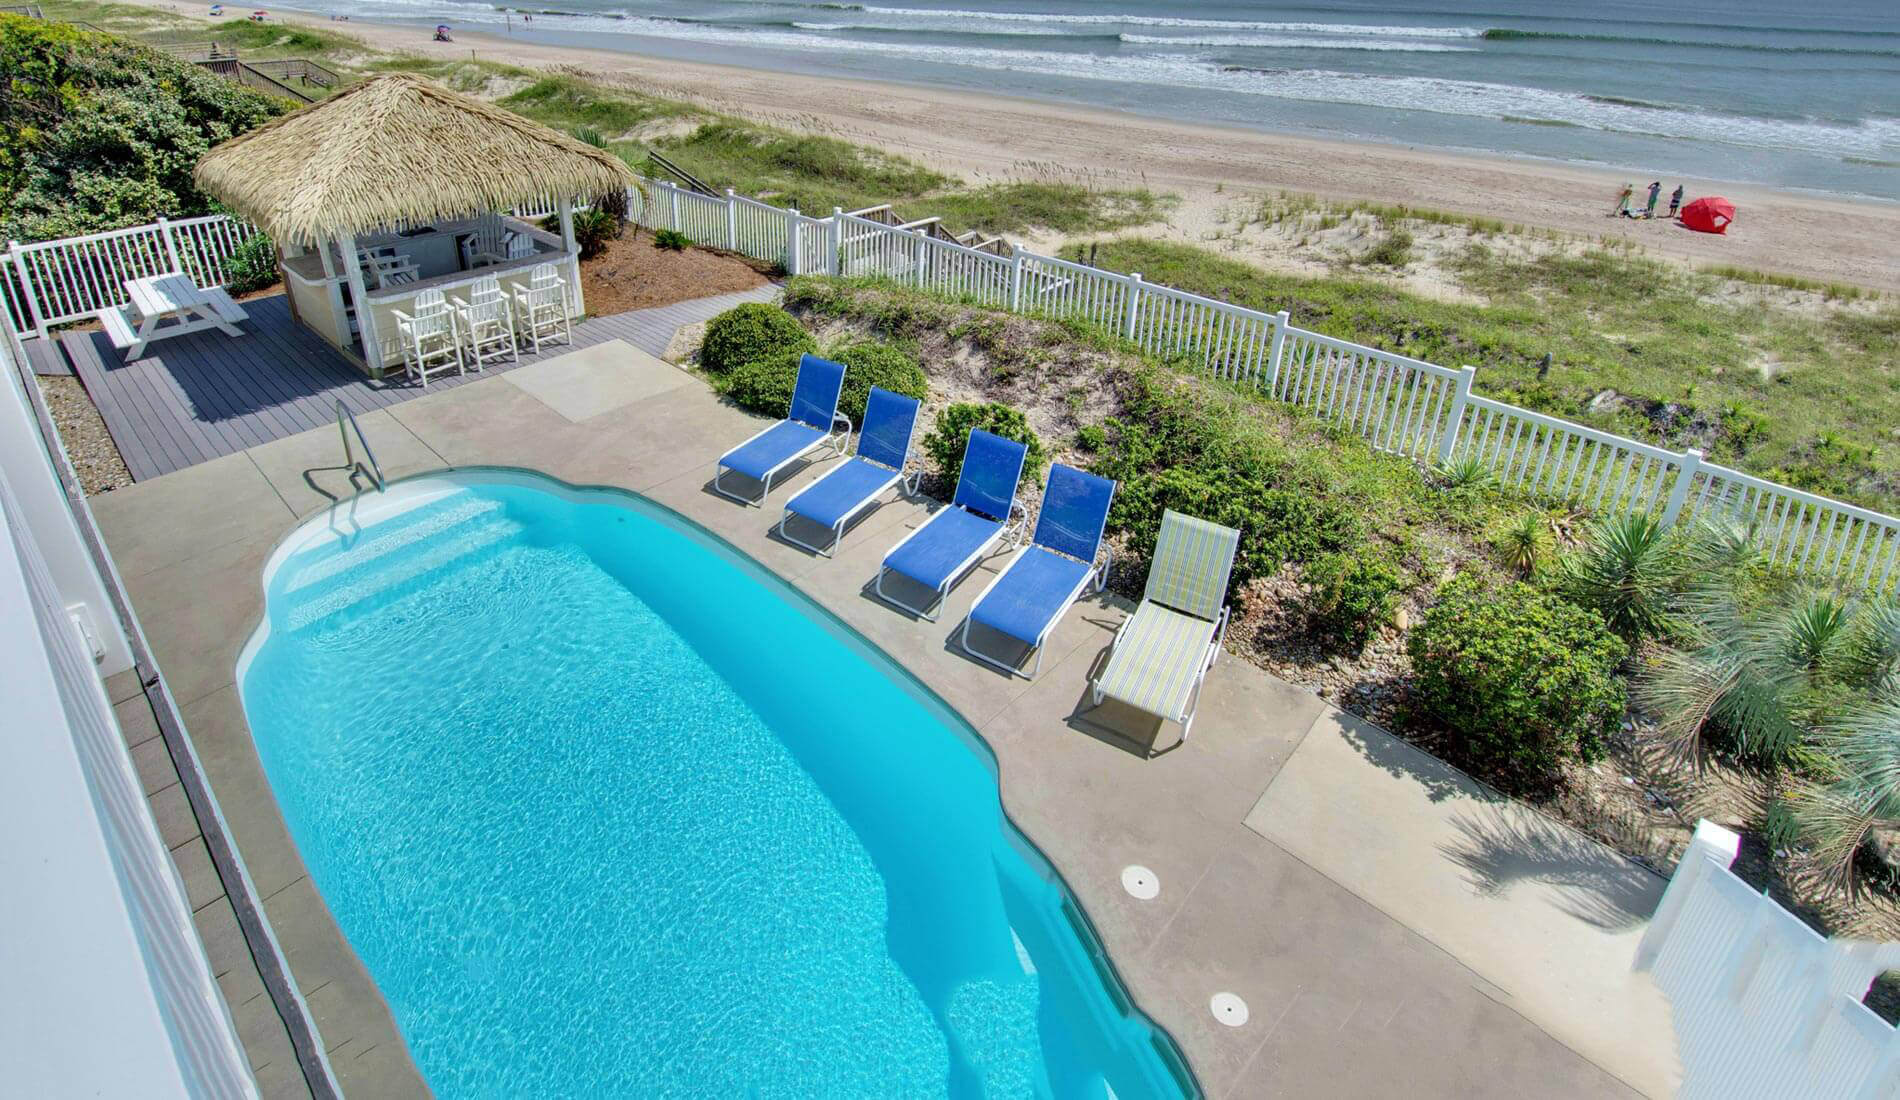 Best Selection & Rates on Emerald Isle Vacation Rentals